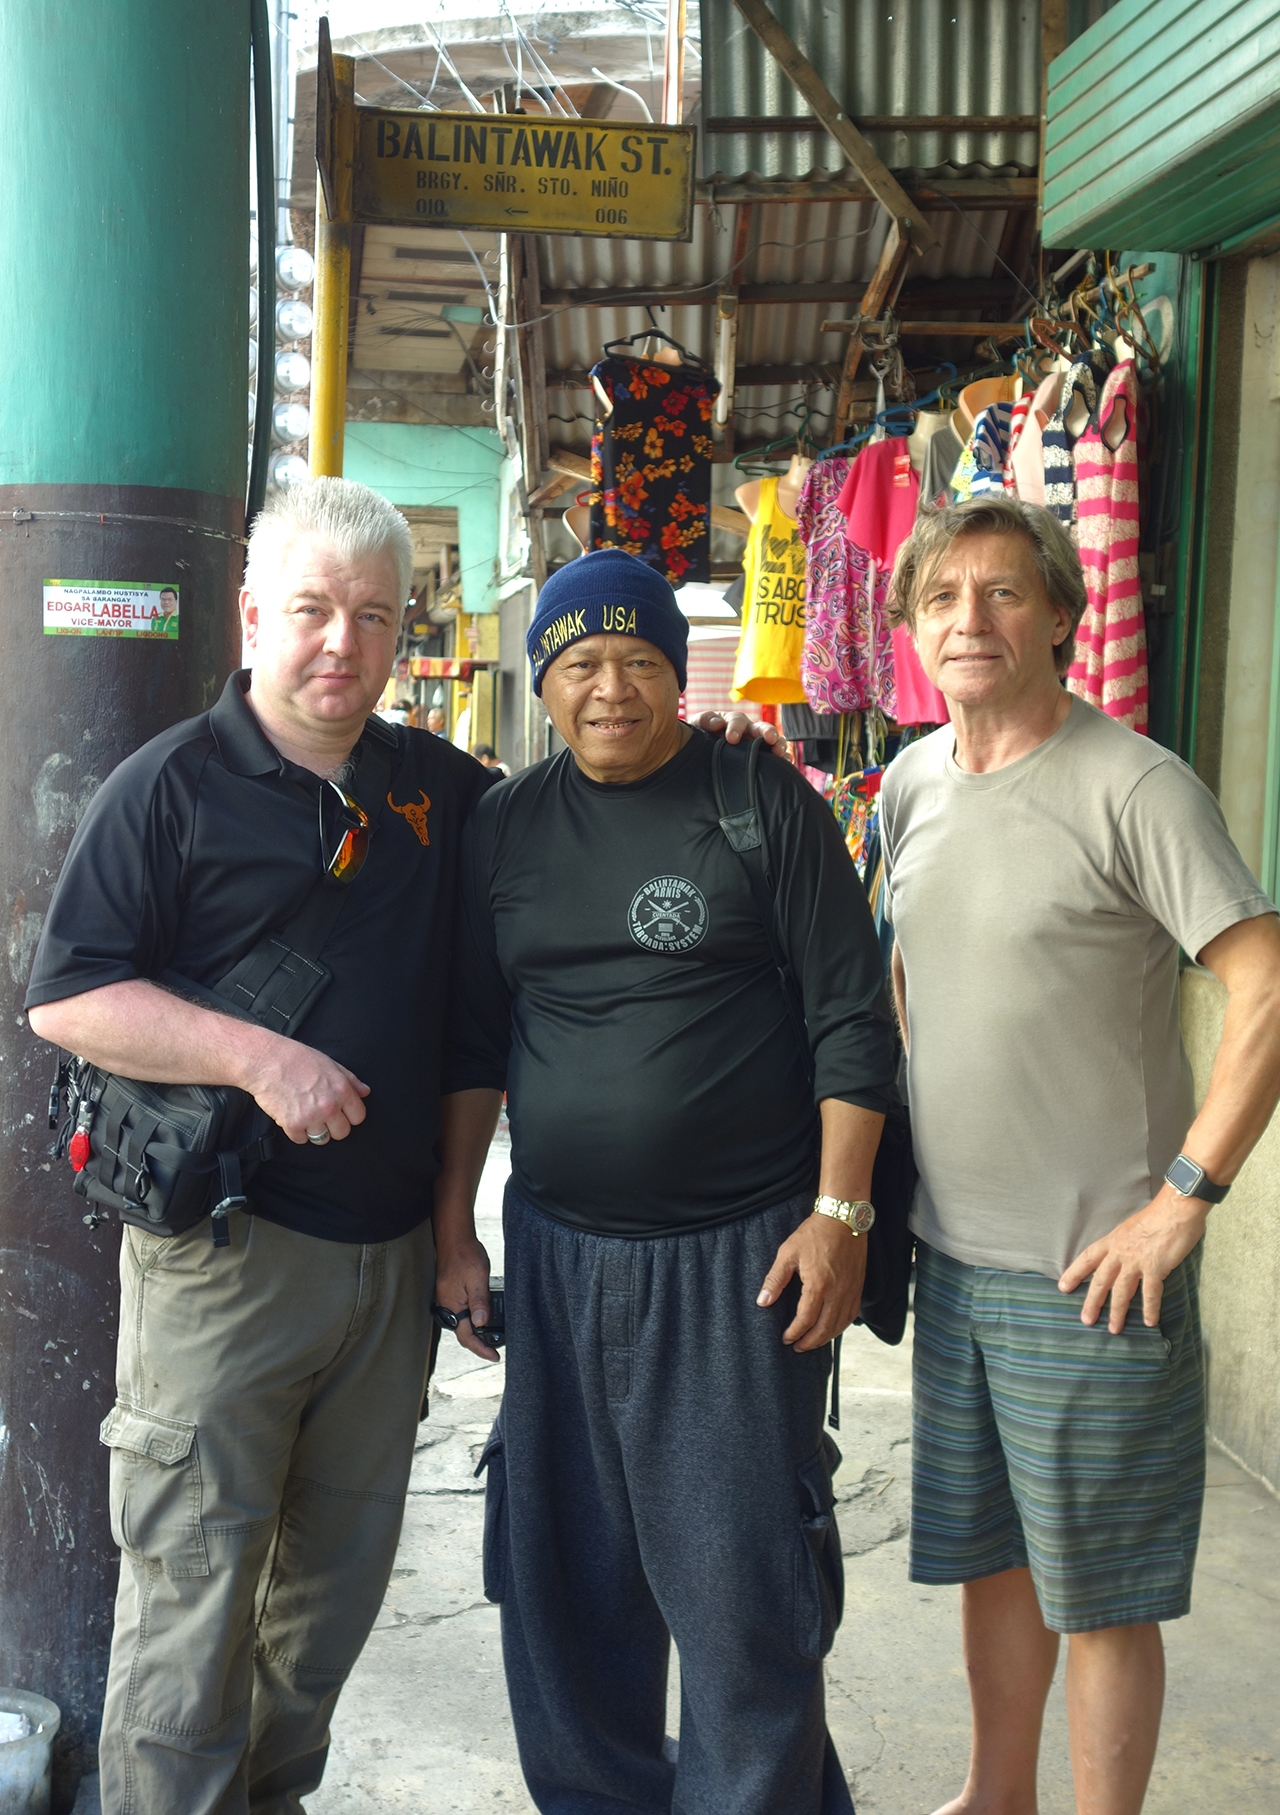 Arnis masters Bobby Taboad and Tim Hartman on Balintawak Street, Philippines